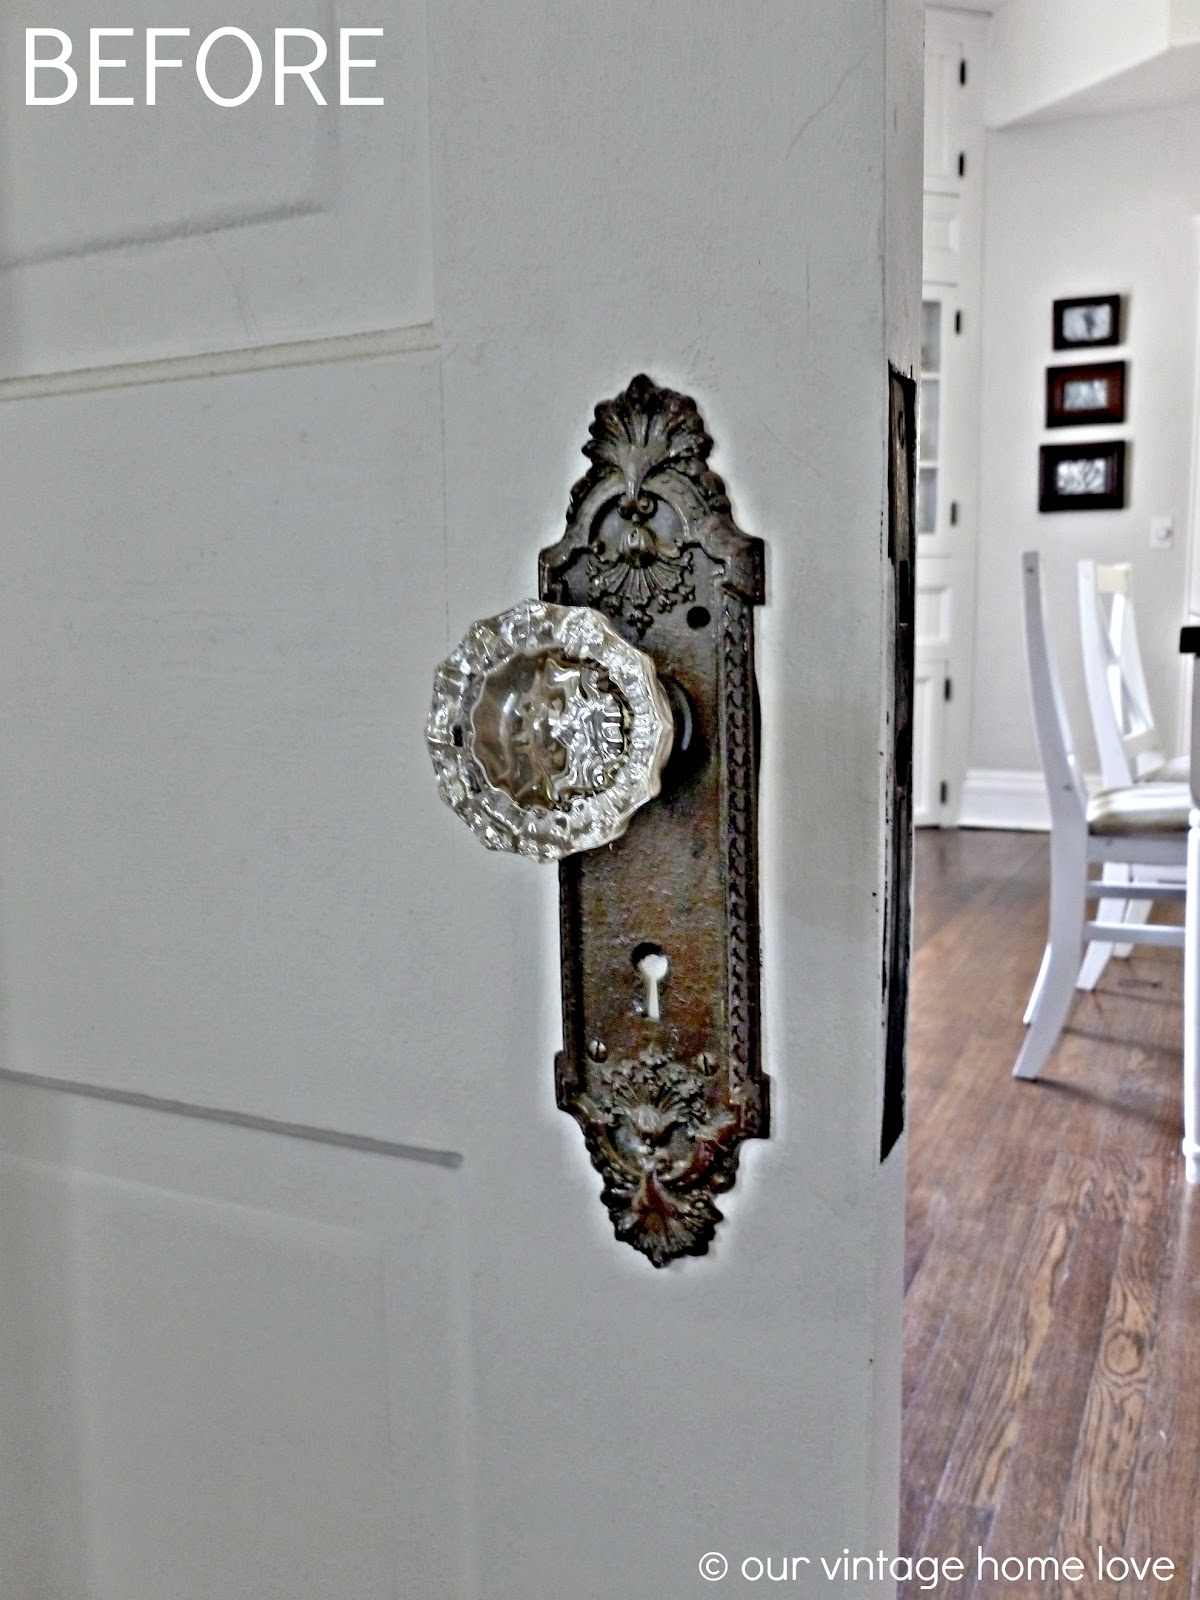 vintage home love: Pocket Doors and Porcelain Door Knobs